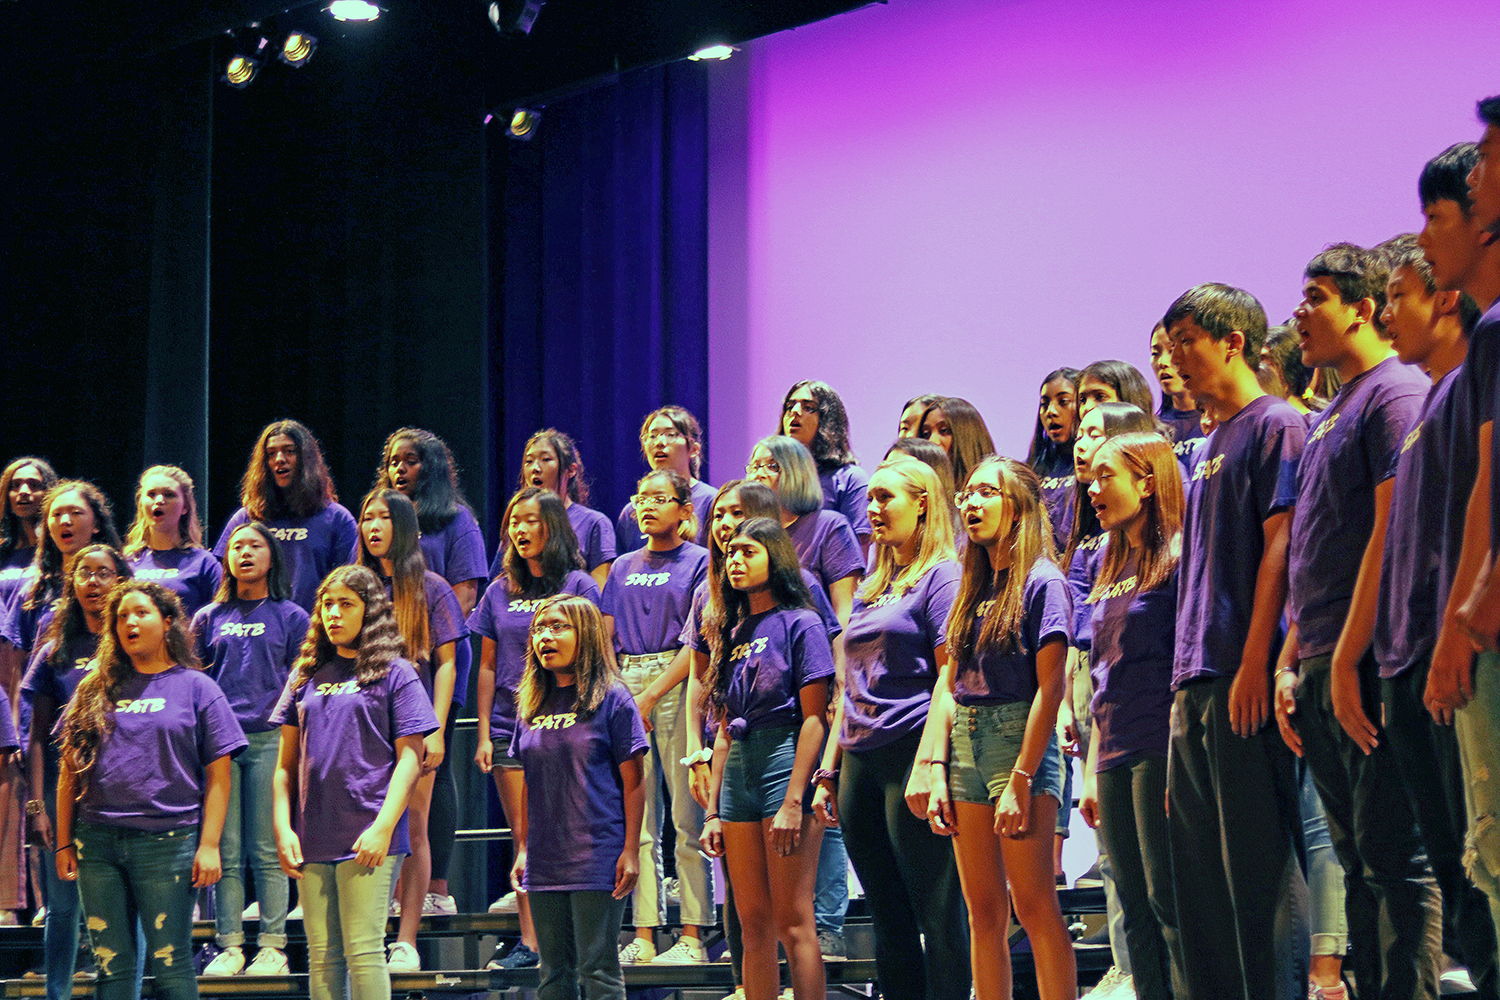 """Portola Singers and Canta Bella perform """"The Prayer of the Children"""" by Kurt Bestor. This coming April, all choir groups are invited to attend the spring break tour in Chicago, Illinois, where they will receive specialized coaching from expert conductors."""